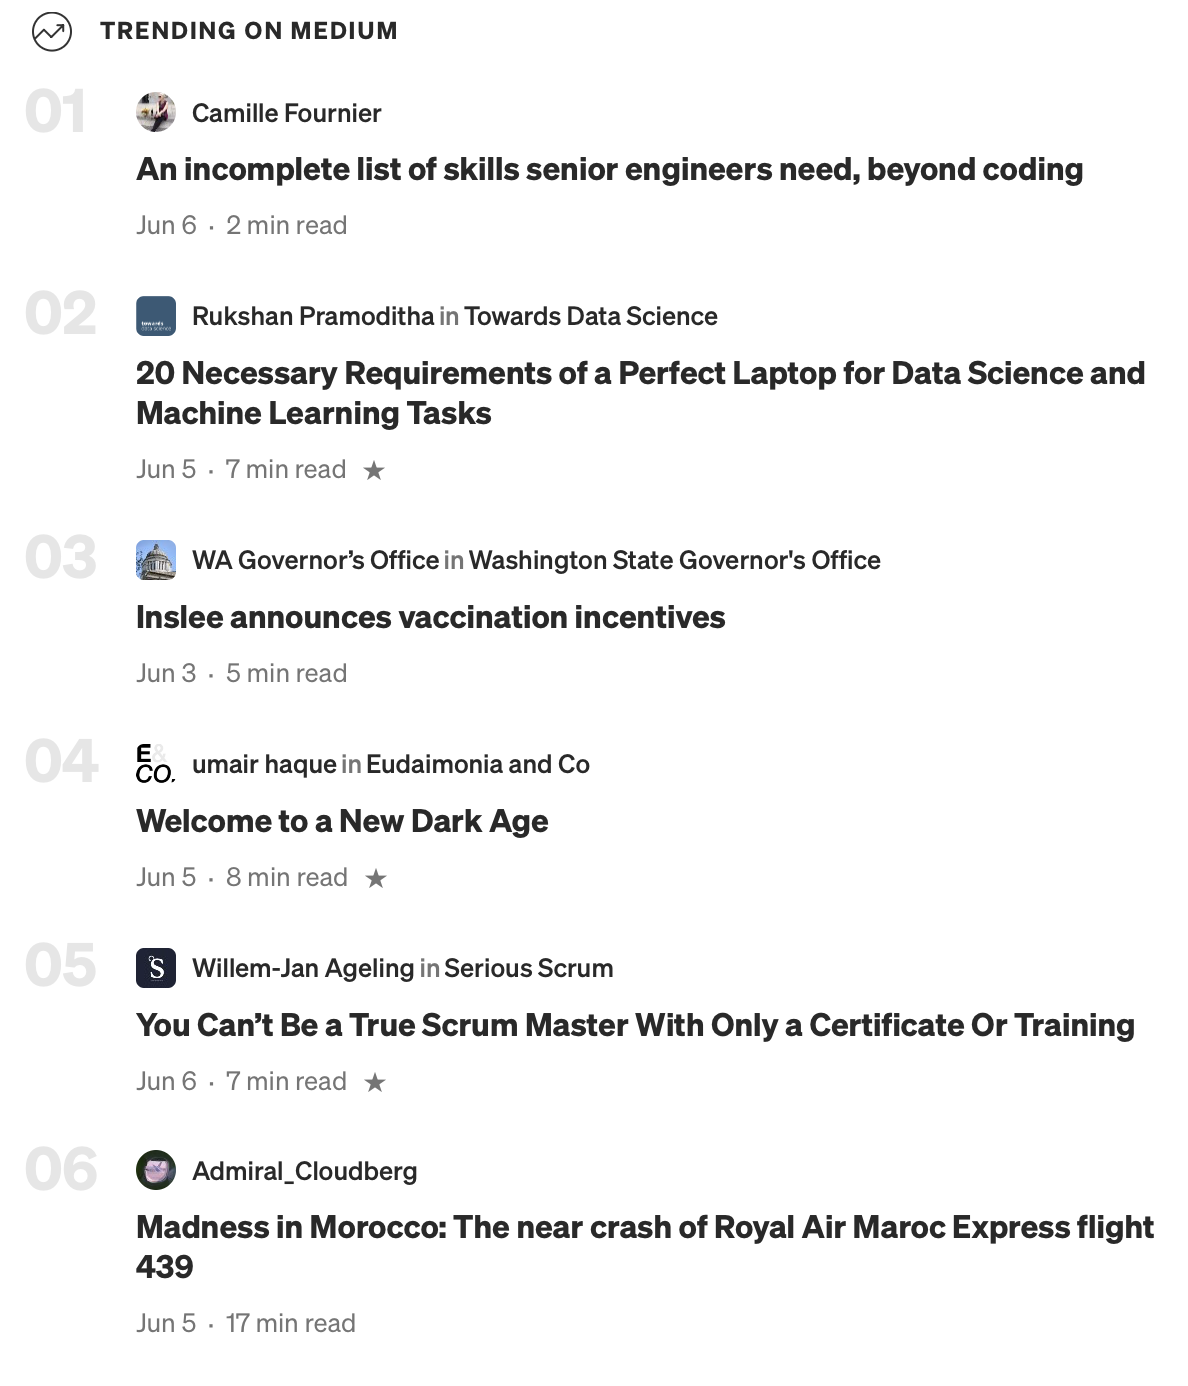 List of articles trending on medium, with author name, title, date, and estimated reading time displayed